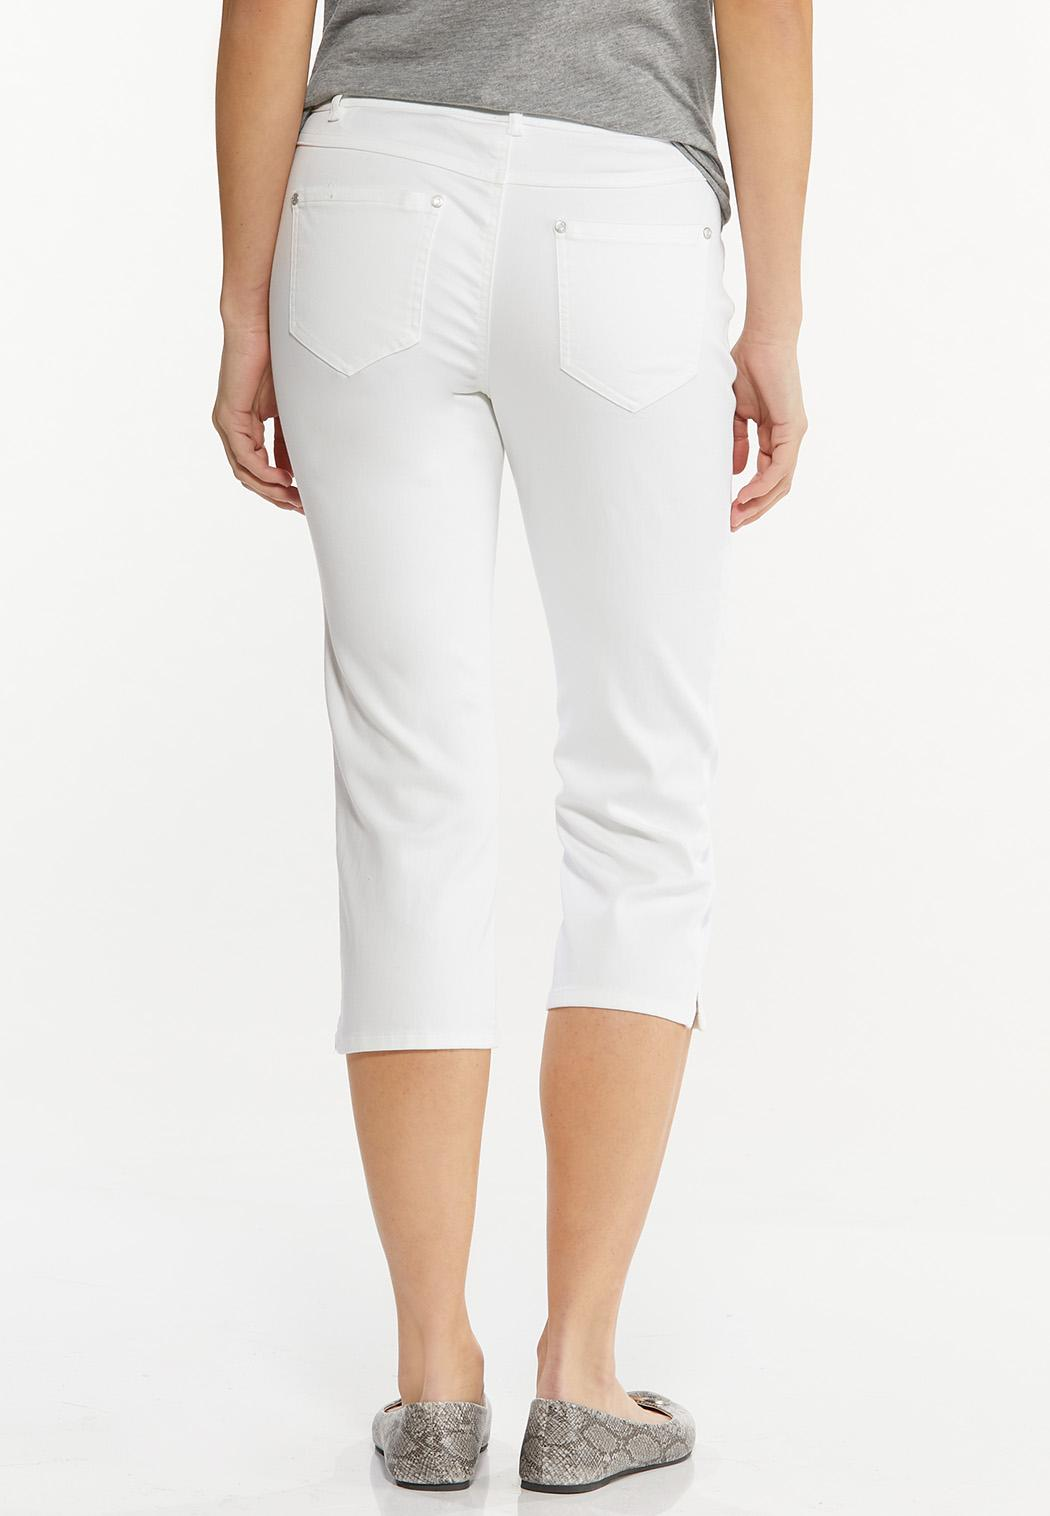 Cropped White Jeans (Item #44508407)